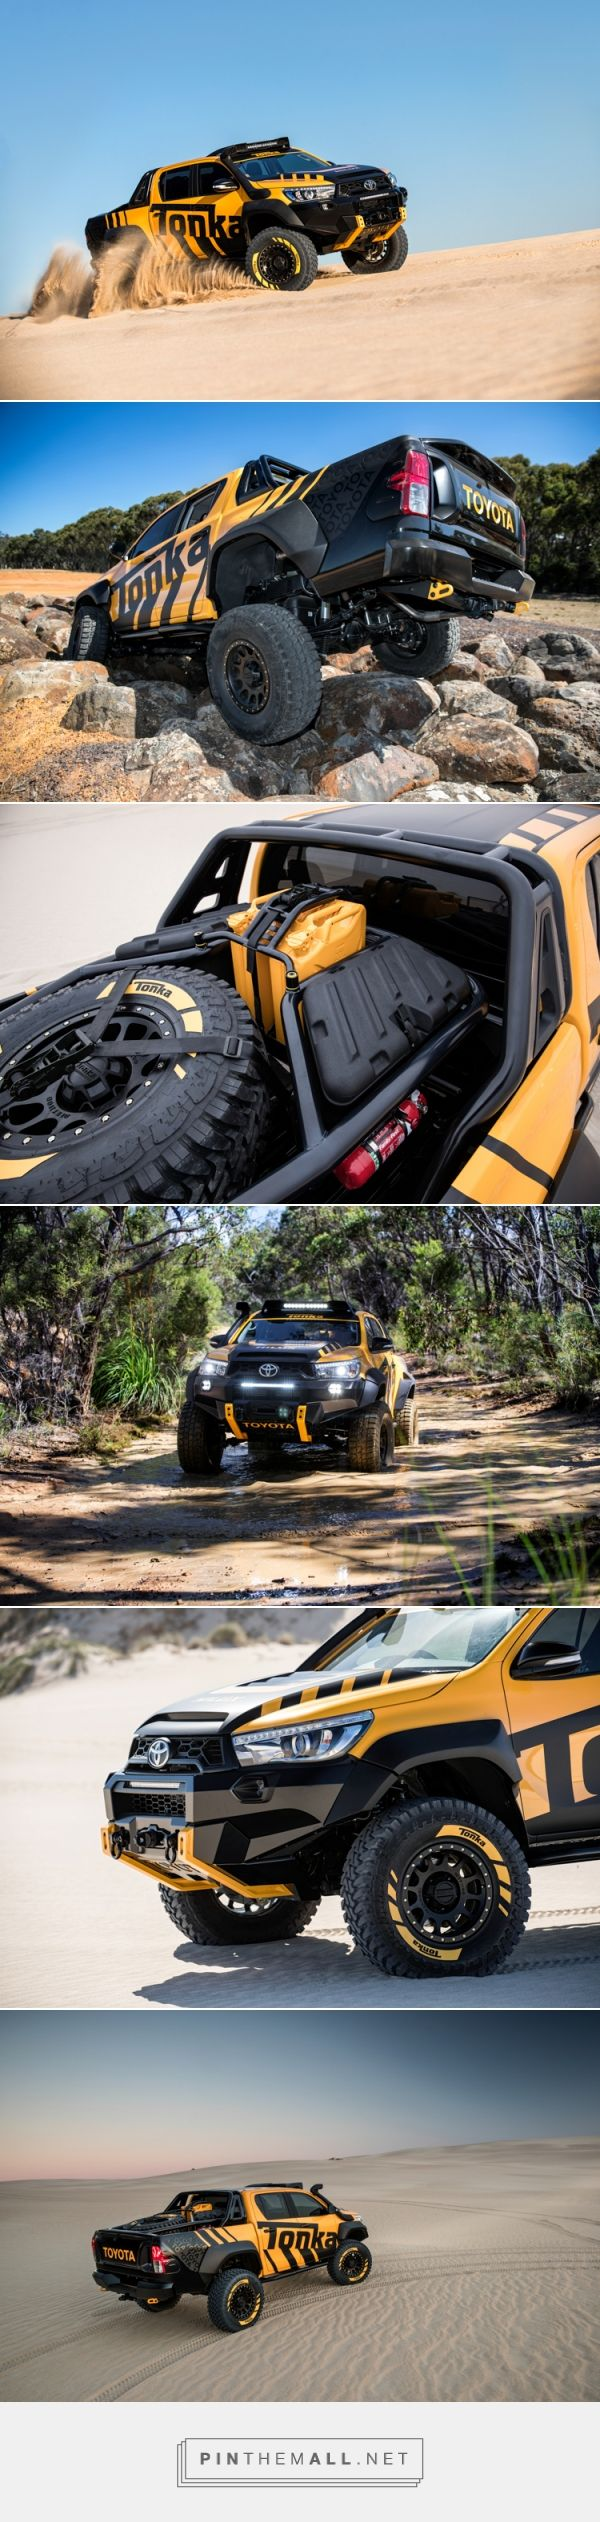 Toyota's HiLux Tonka Concept is a Child's Dream Come True